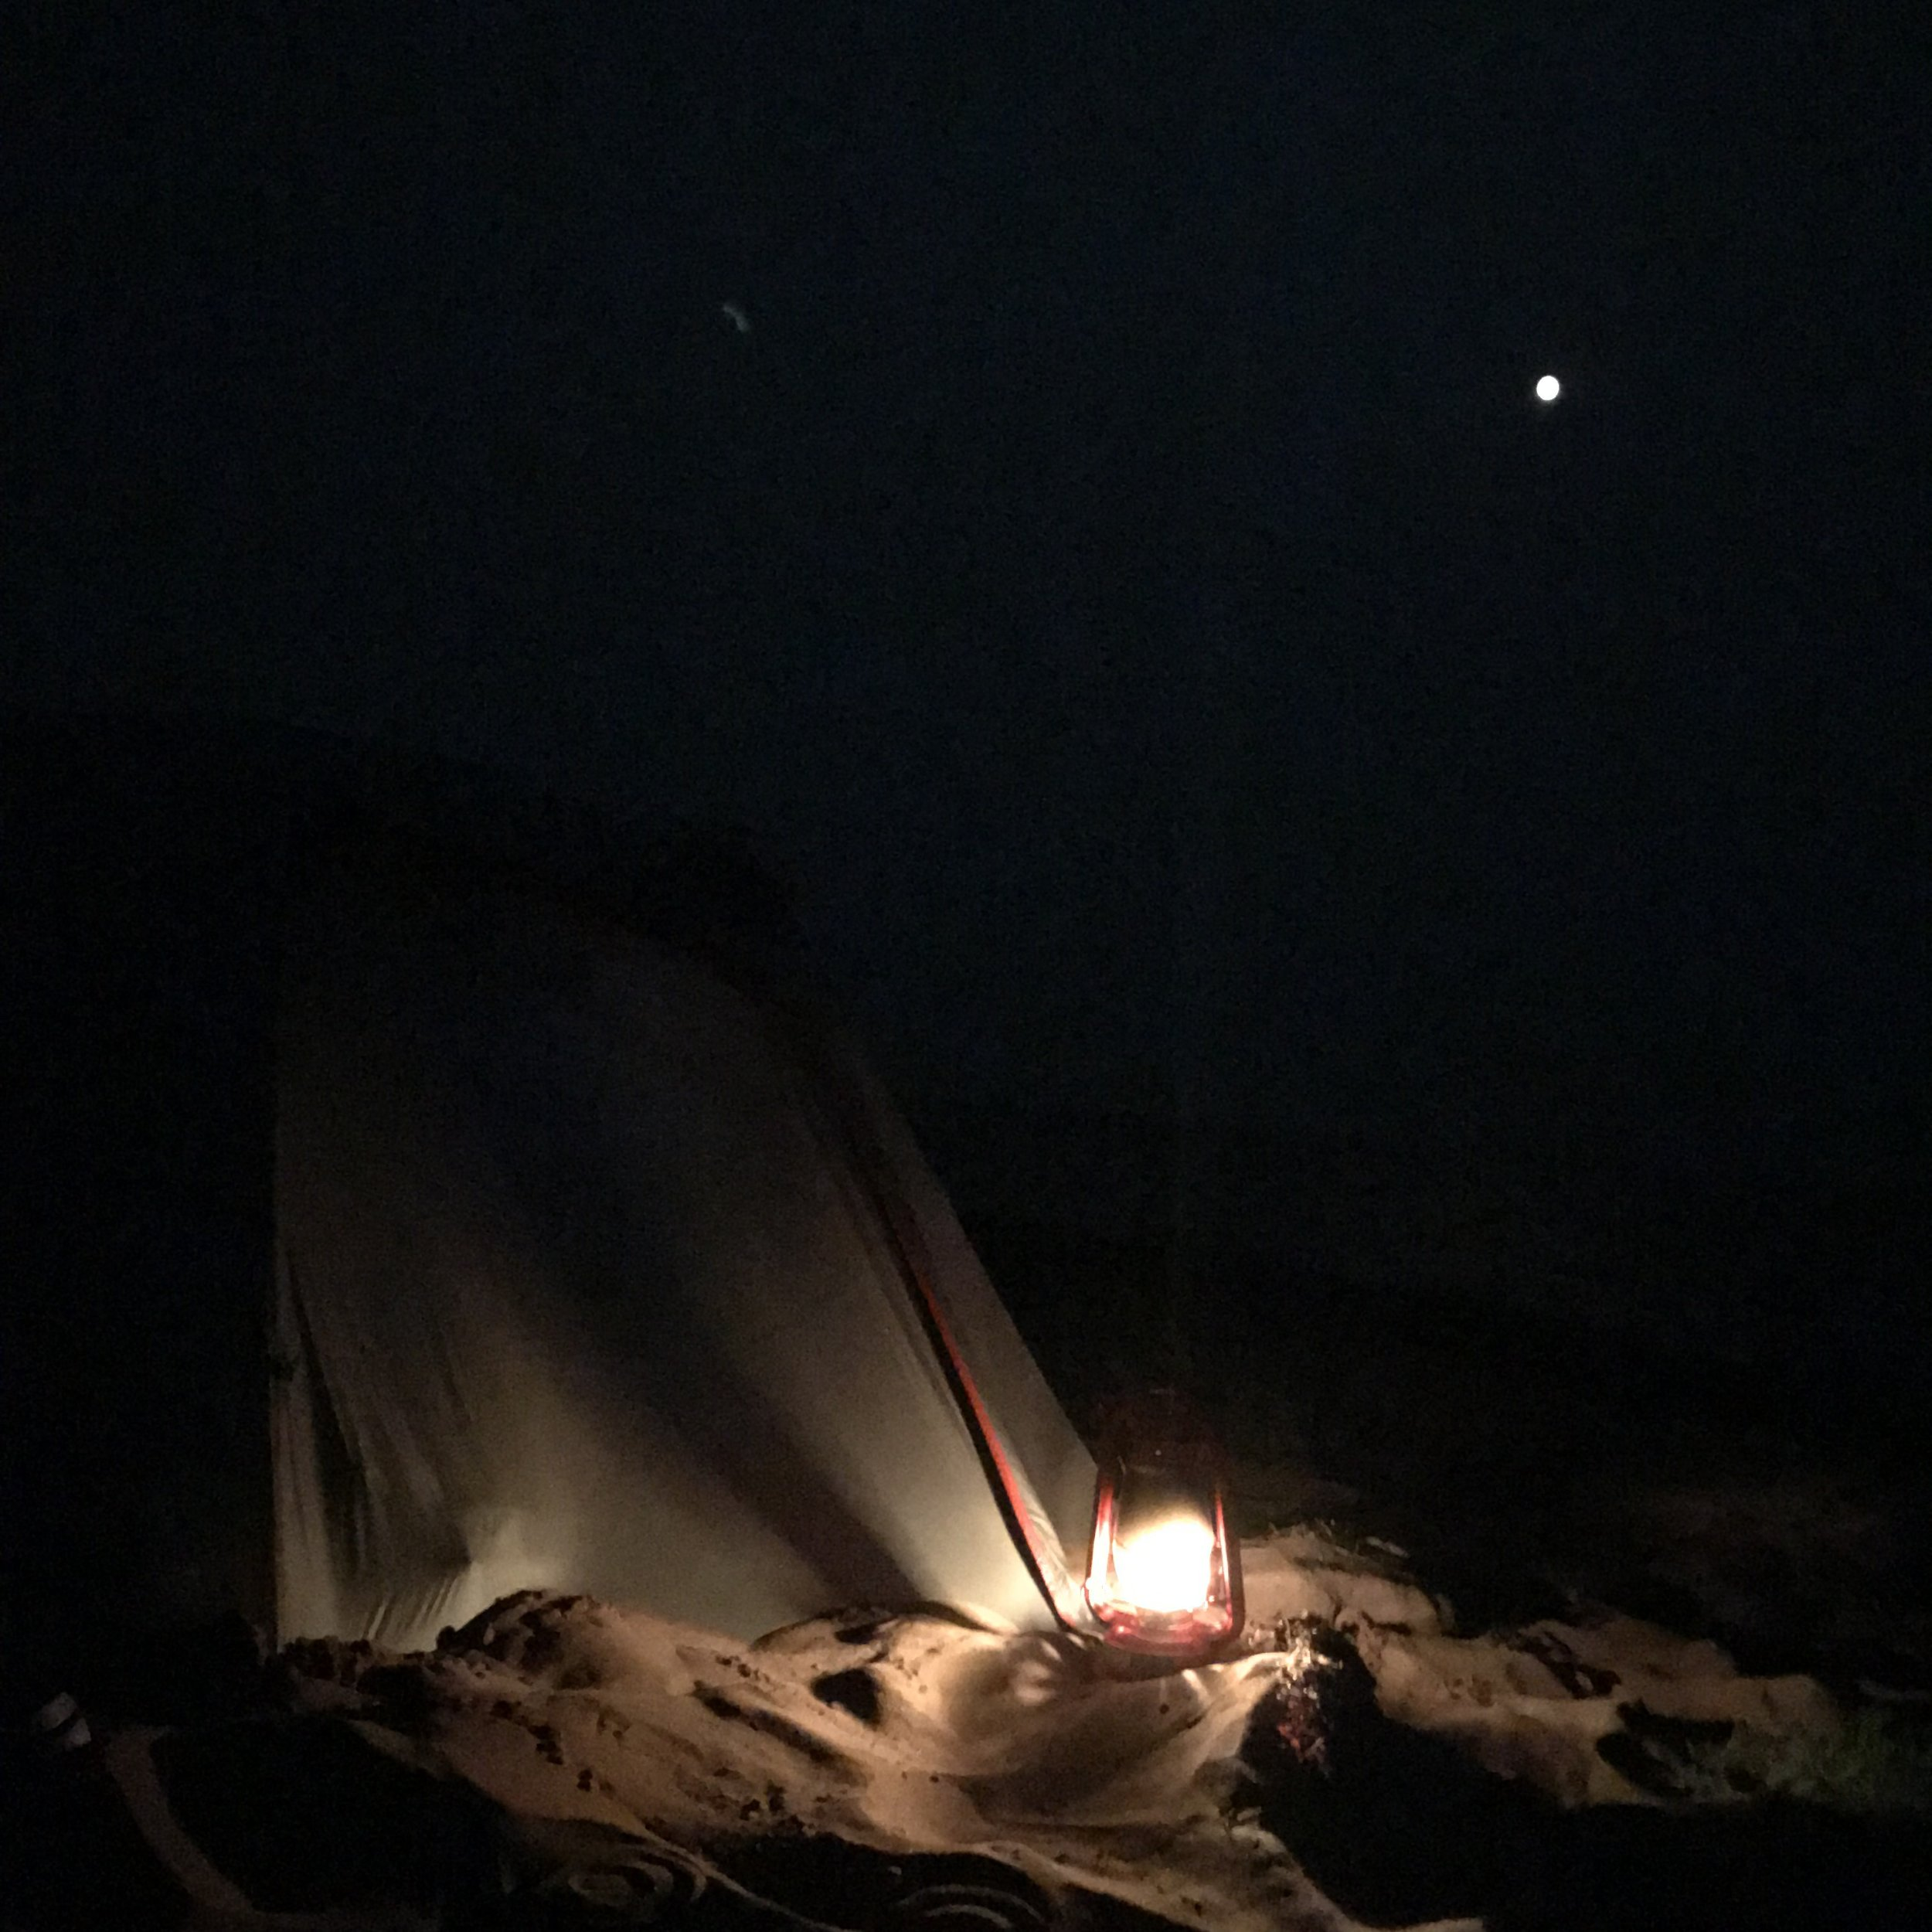 There is nothing quite as great as sleeping under a bright moon, being lulled to sleep by the wind, ocean, and sand hitting the sides of the tent.